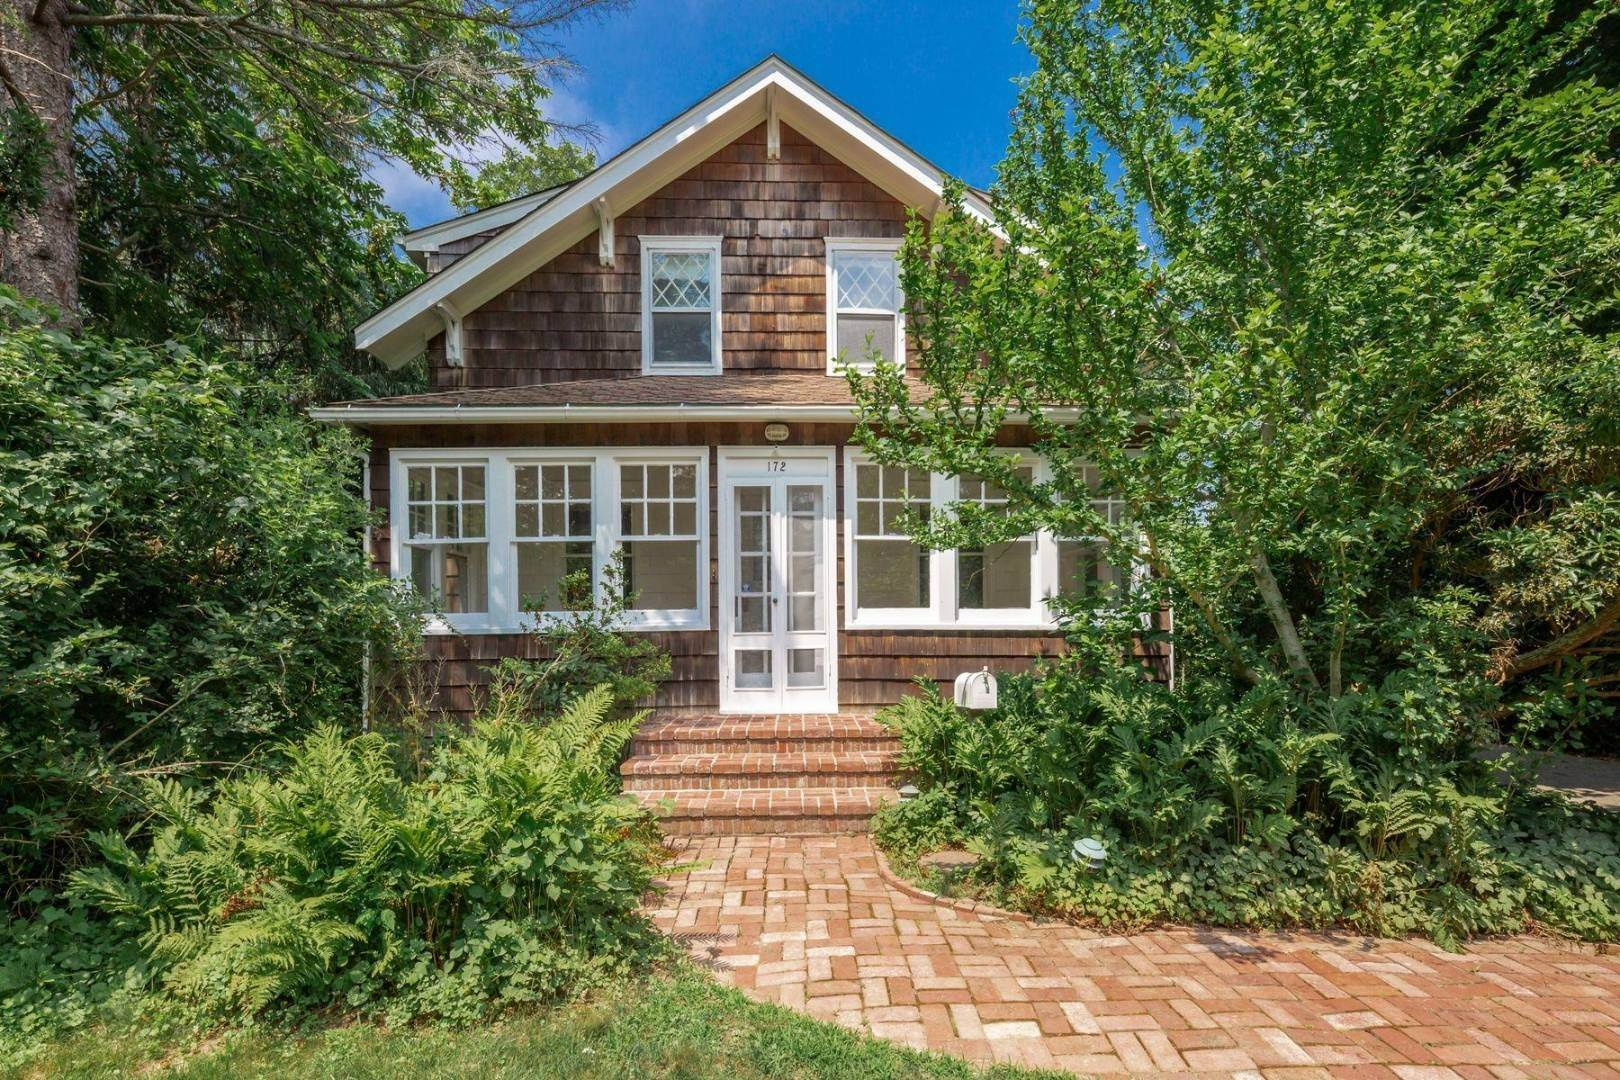 Single Family Home for Sale at Spacious In The Heart Of East Hampton Village 172 Newtown Lane, East Hampton, NY 11937